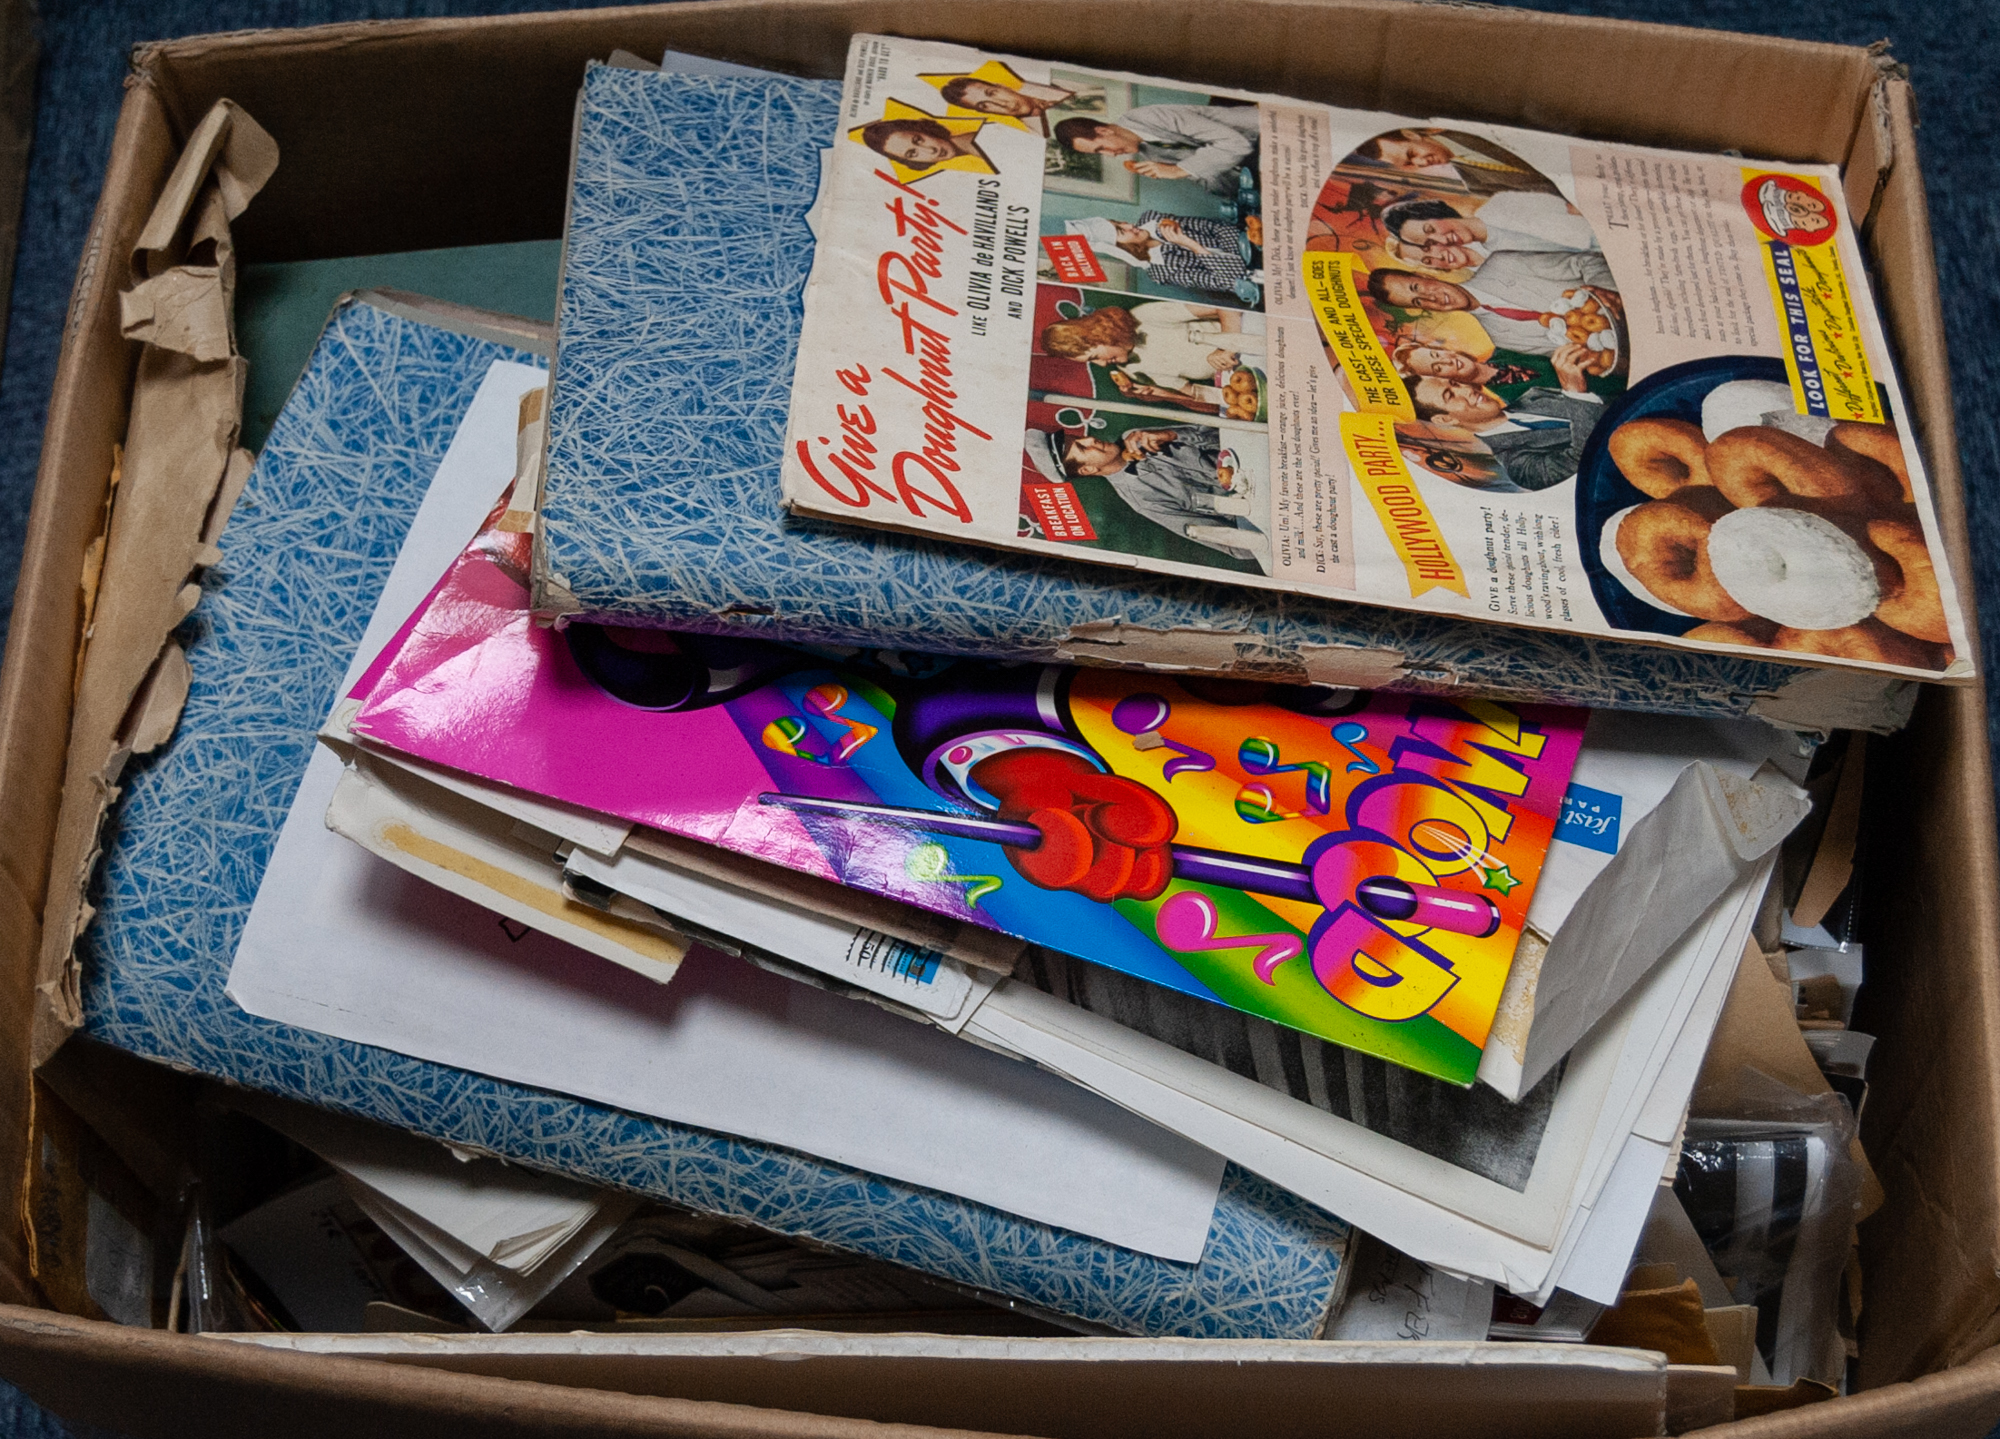 Lot 292 - LARGE COLLECTION OF BETTY GRABLE SCRAPS AND PRESS CUTTINGS, all loose, contents of one large box